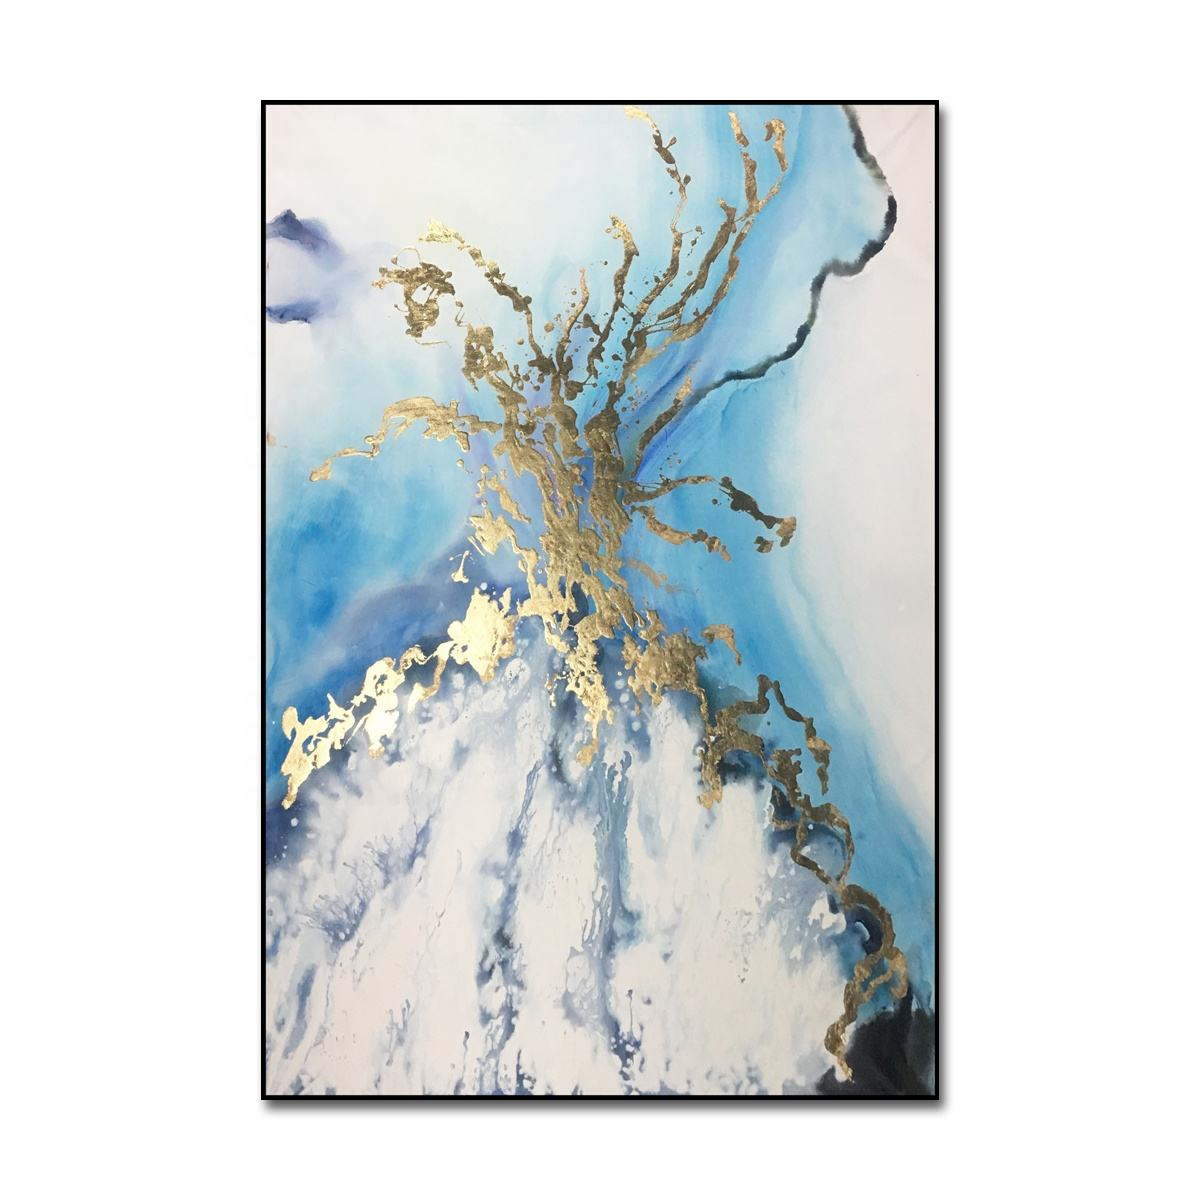 Customize Modern Abstract Canvas Paintings Wall Art Handmade Oil Painting on Canvas Artworks for Hotel